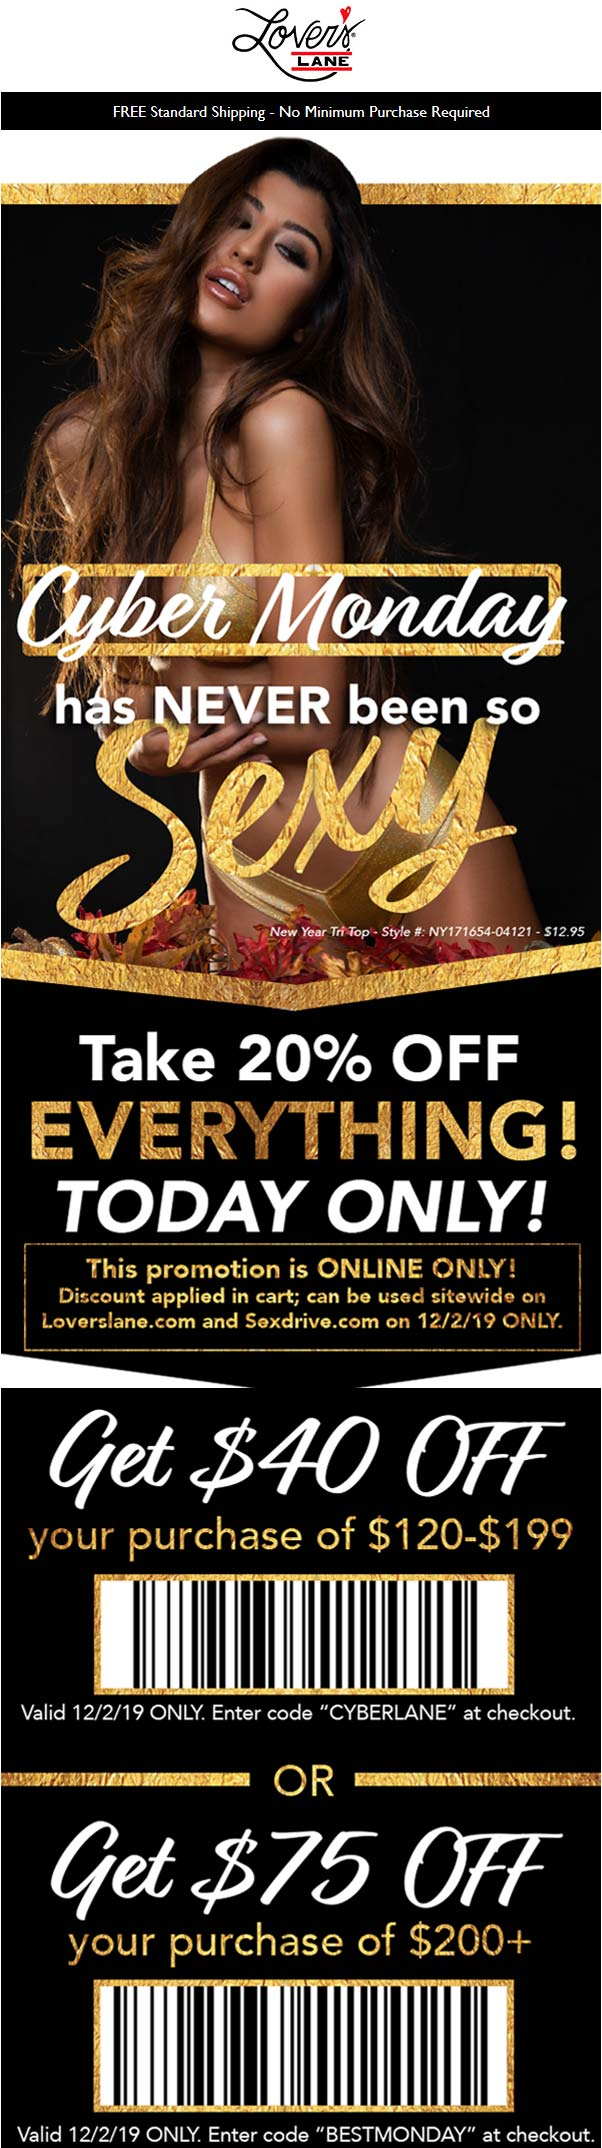 Lovers Lane coupons & promo code for [March 2020]